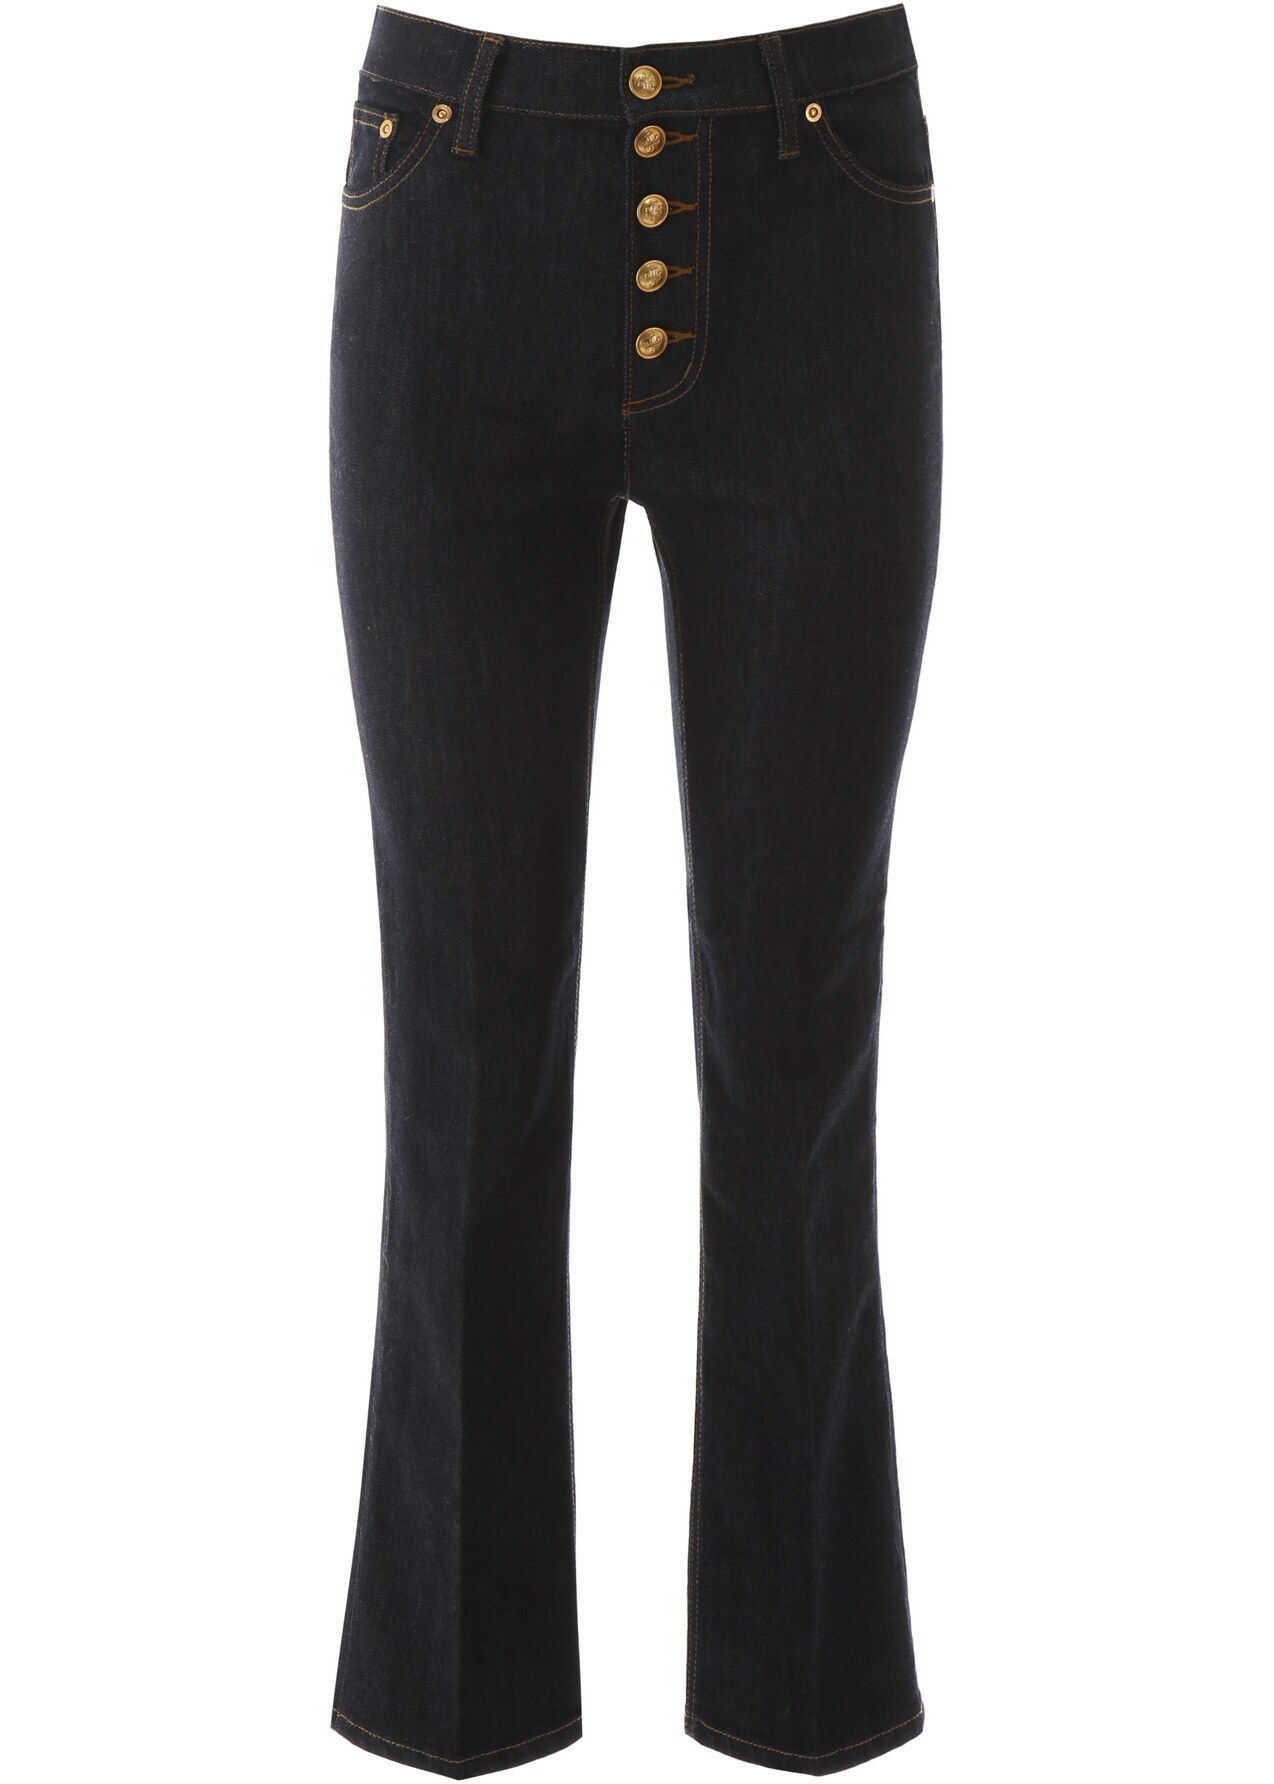 Tory Burch Jeans With Logo Buttons RESIN RINSE